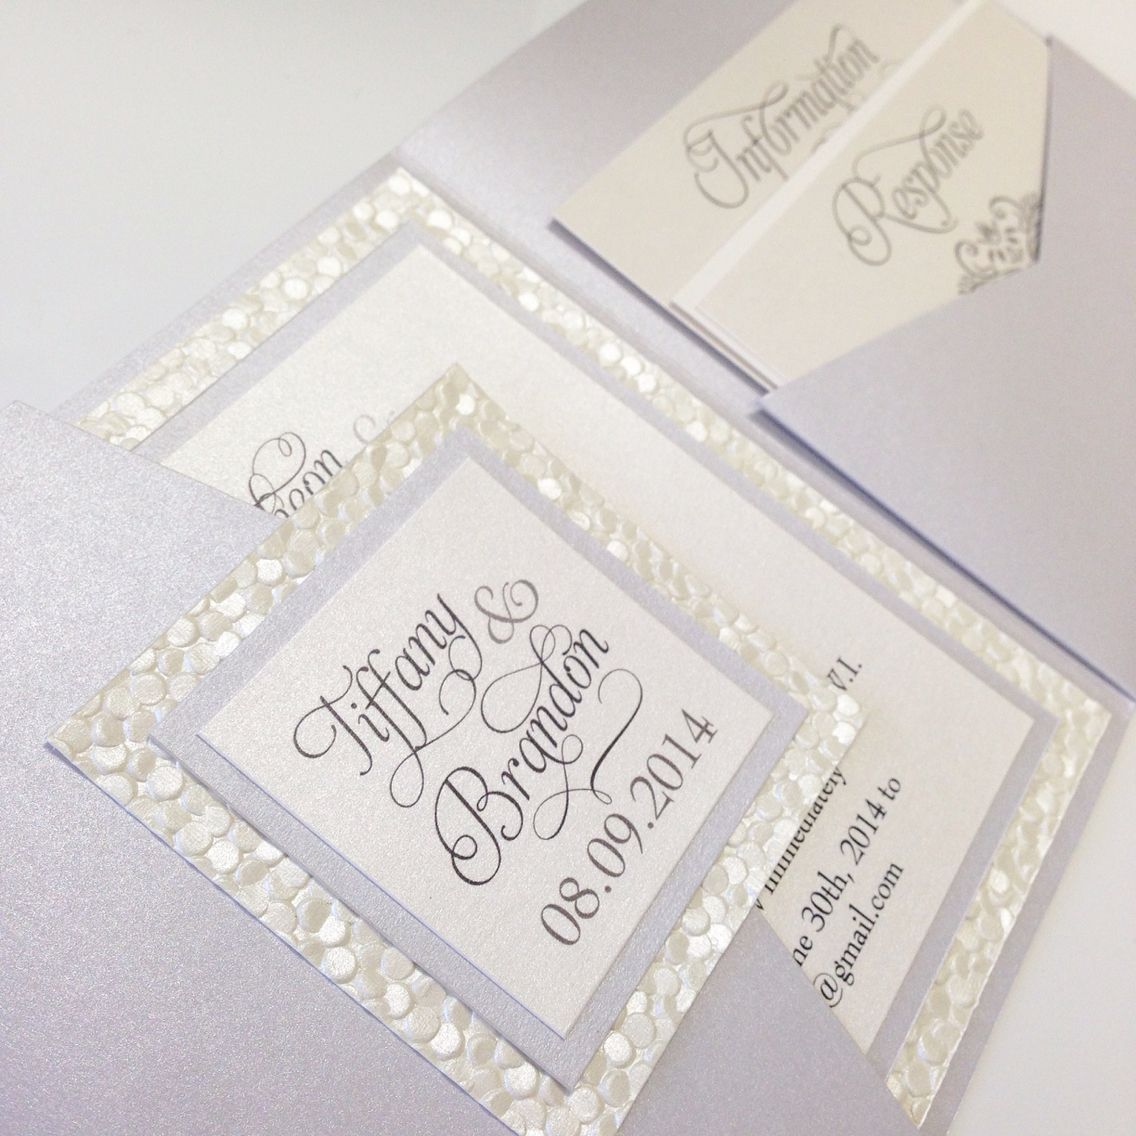 Pebble Paper Pewter And Ivory Wedding Invitation Pocketfold With Script Lettering Font Www Thepolkadotpaper